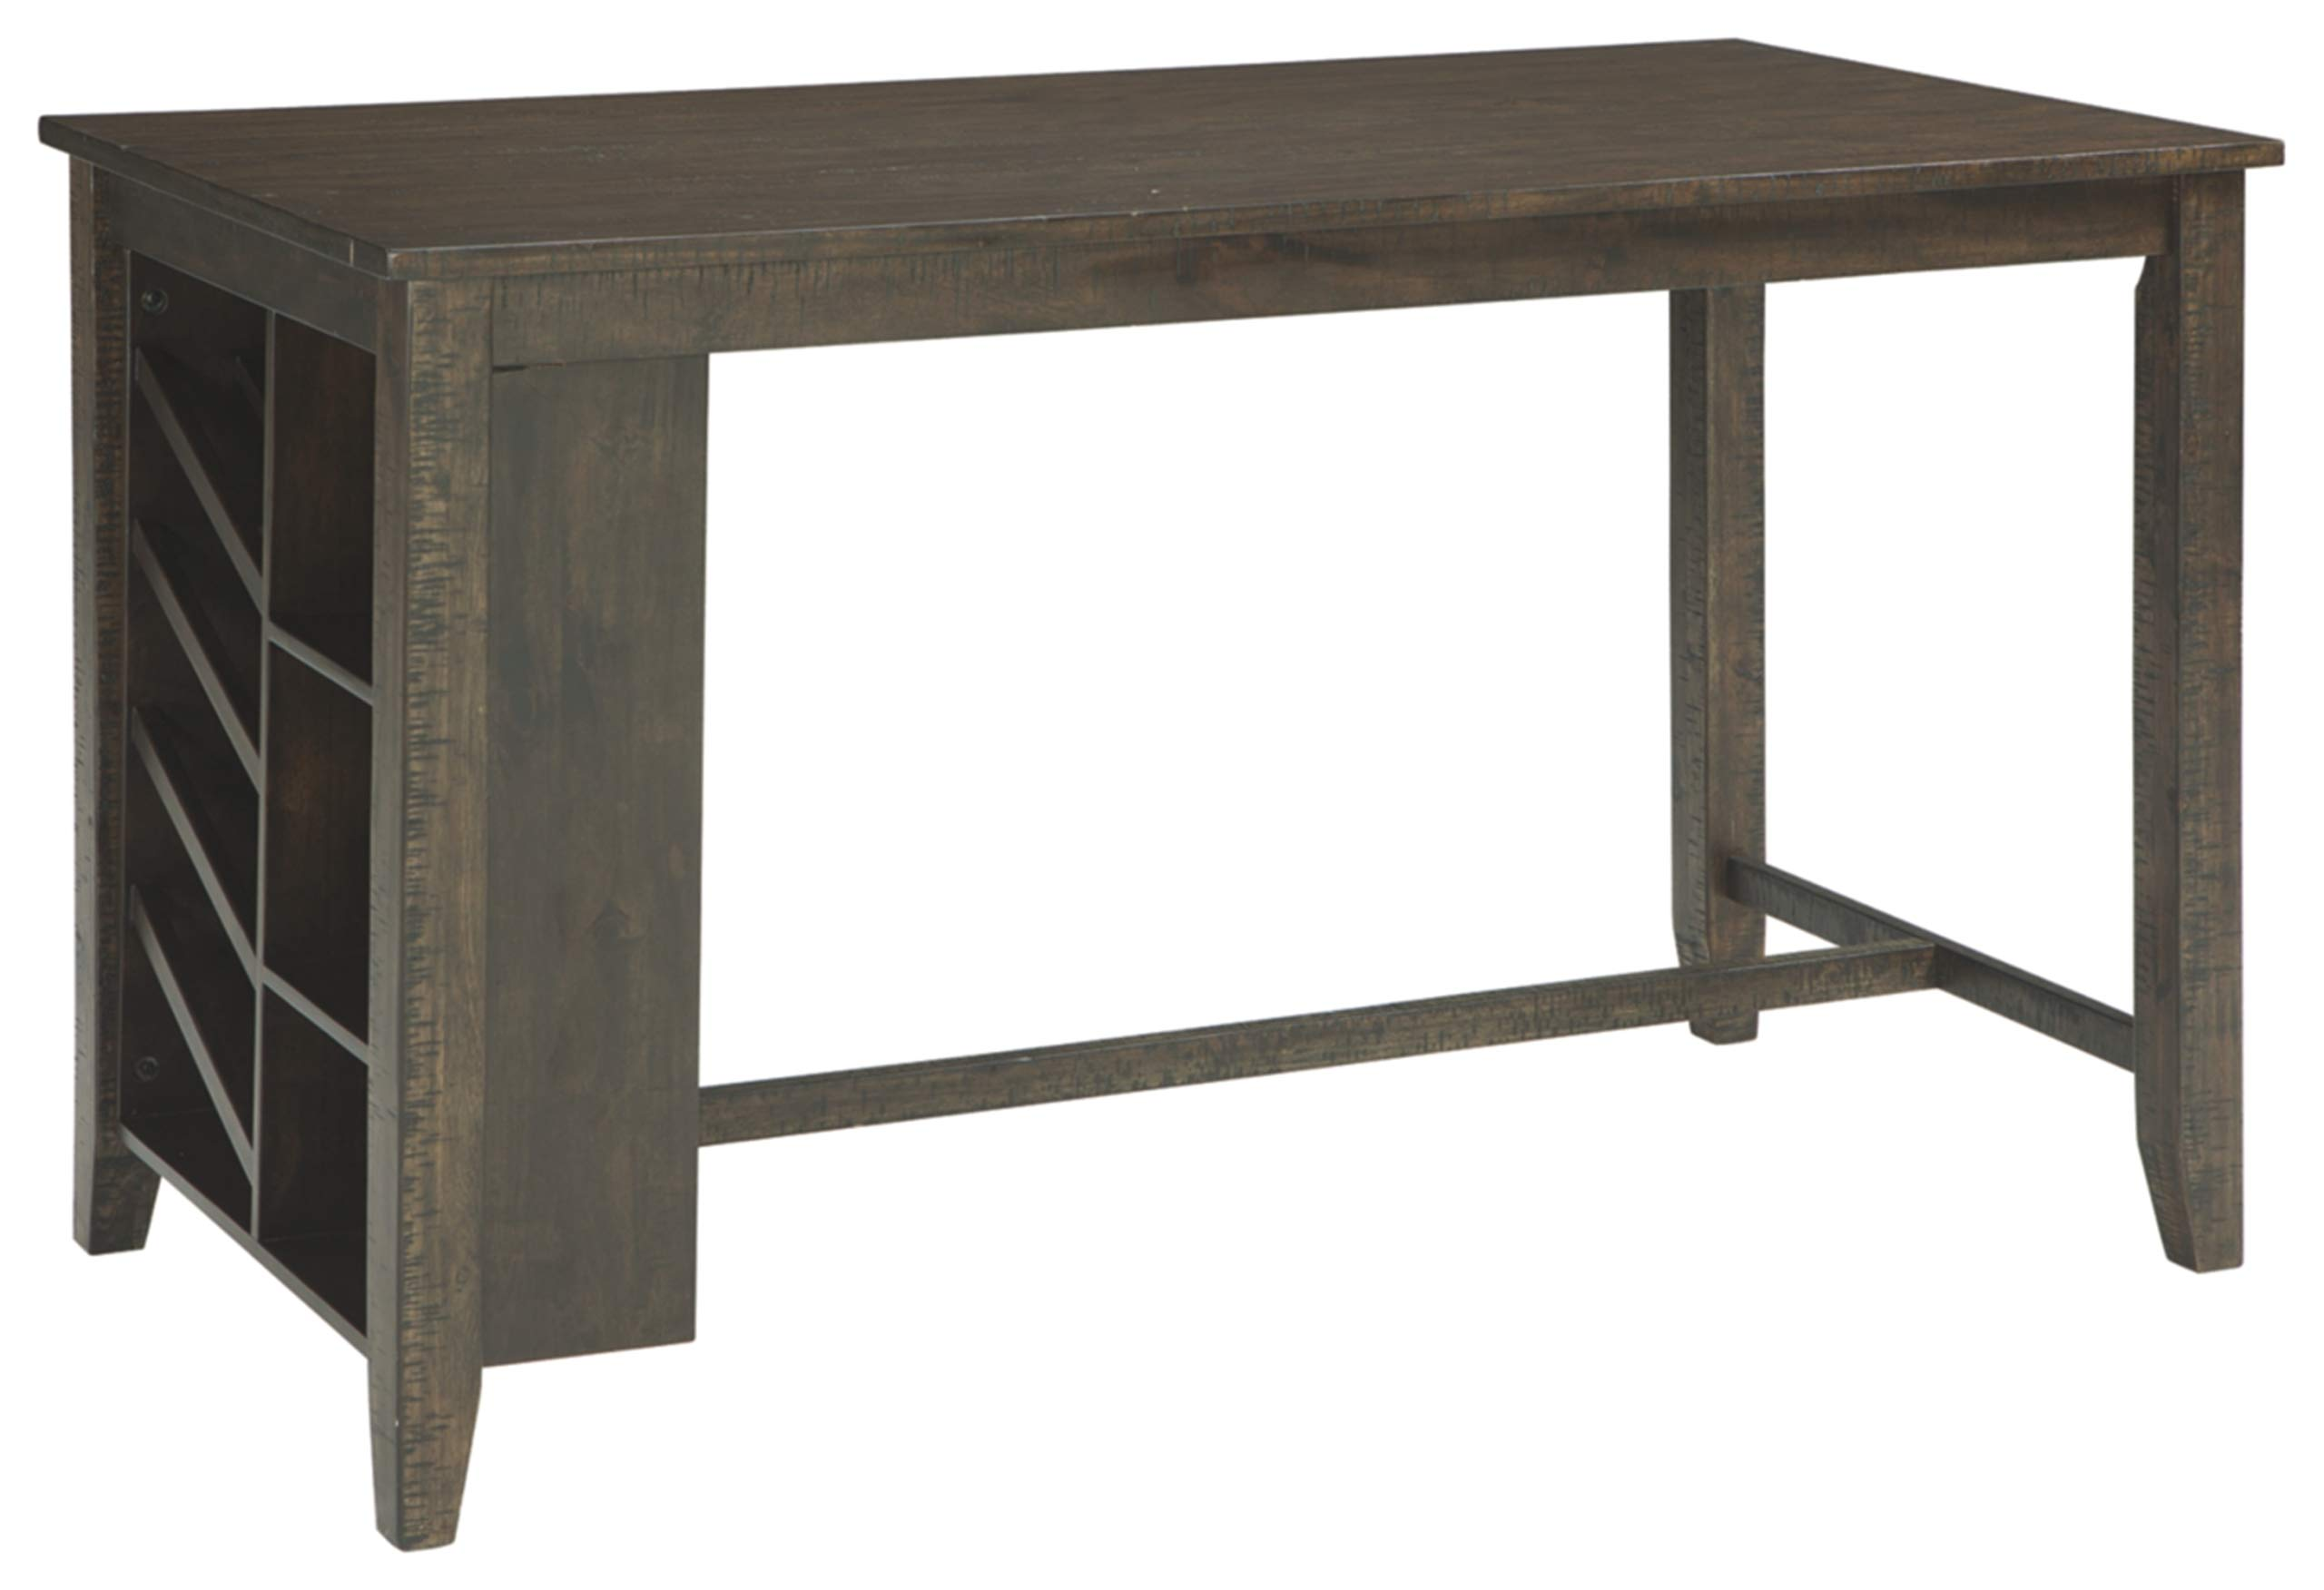 Signature Design by Ashley D397-32 Rokane Counter Height Dining Room Table, Brown by Signature Design by Ashley (Image #1)